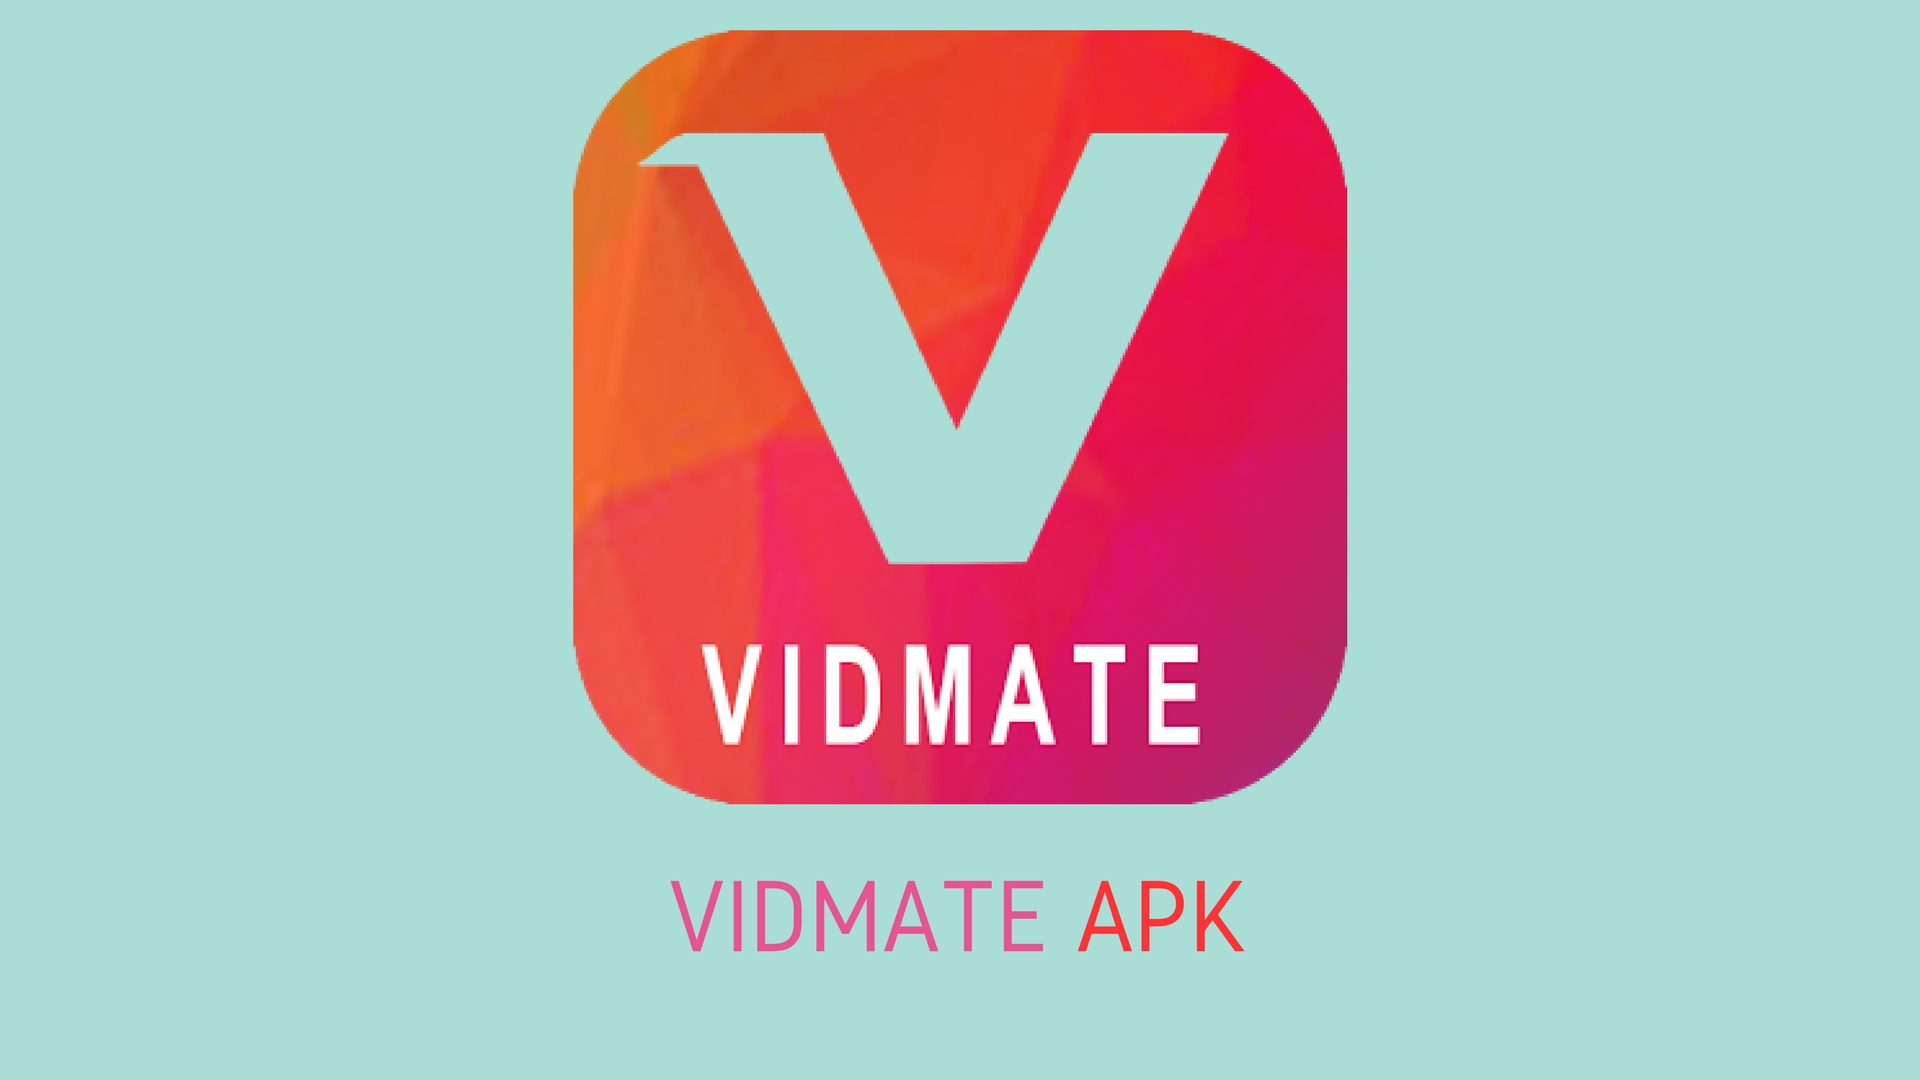 Vidmate video download app apk